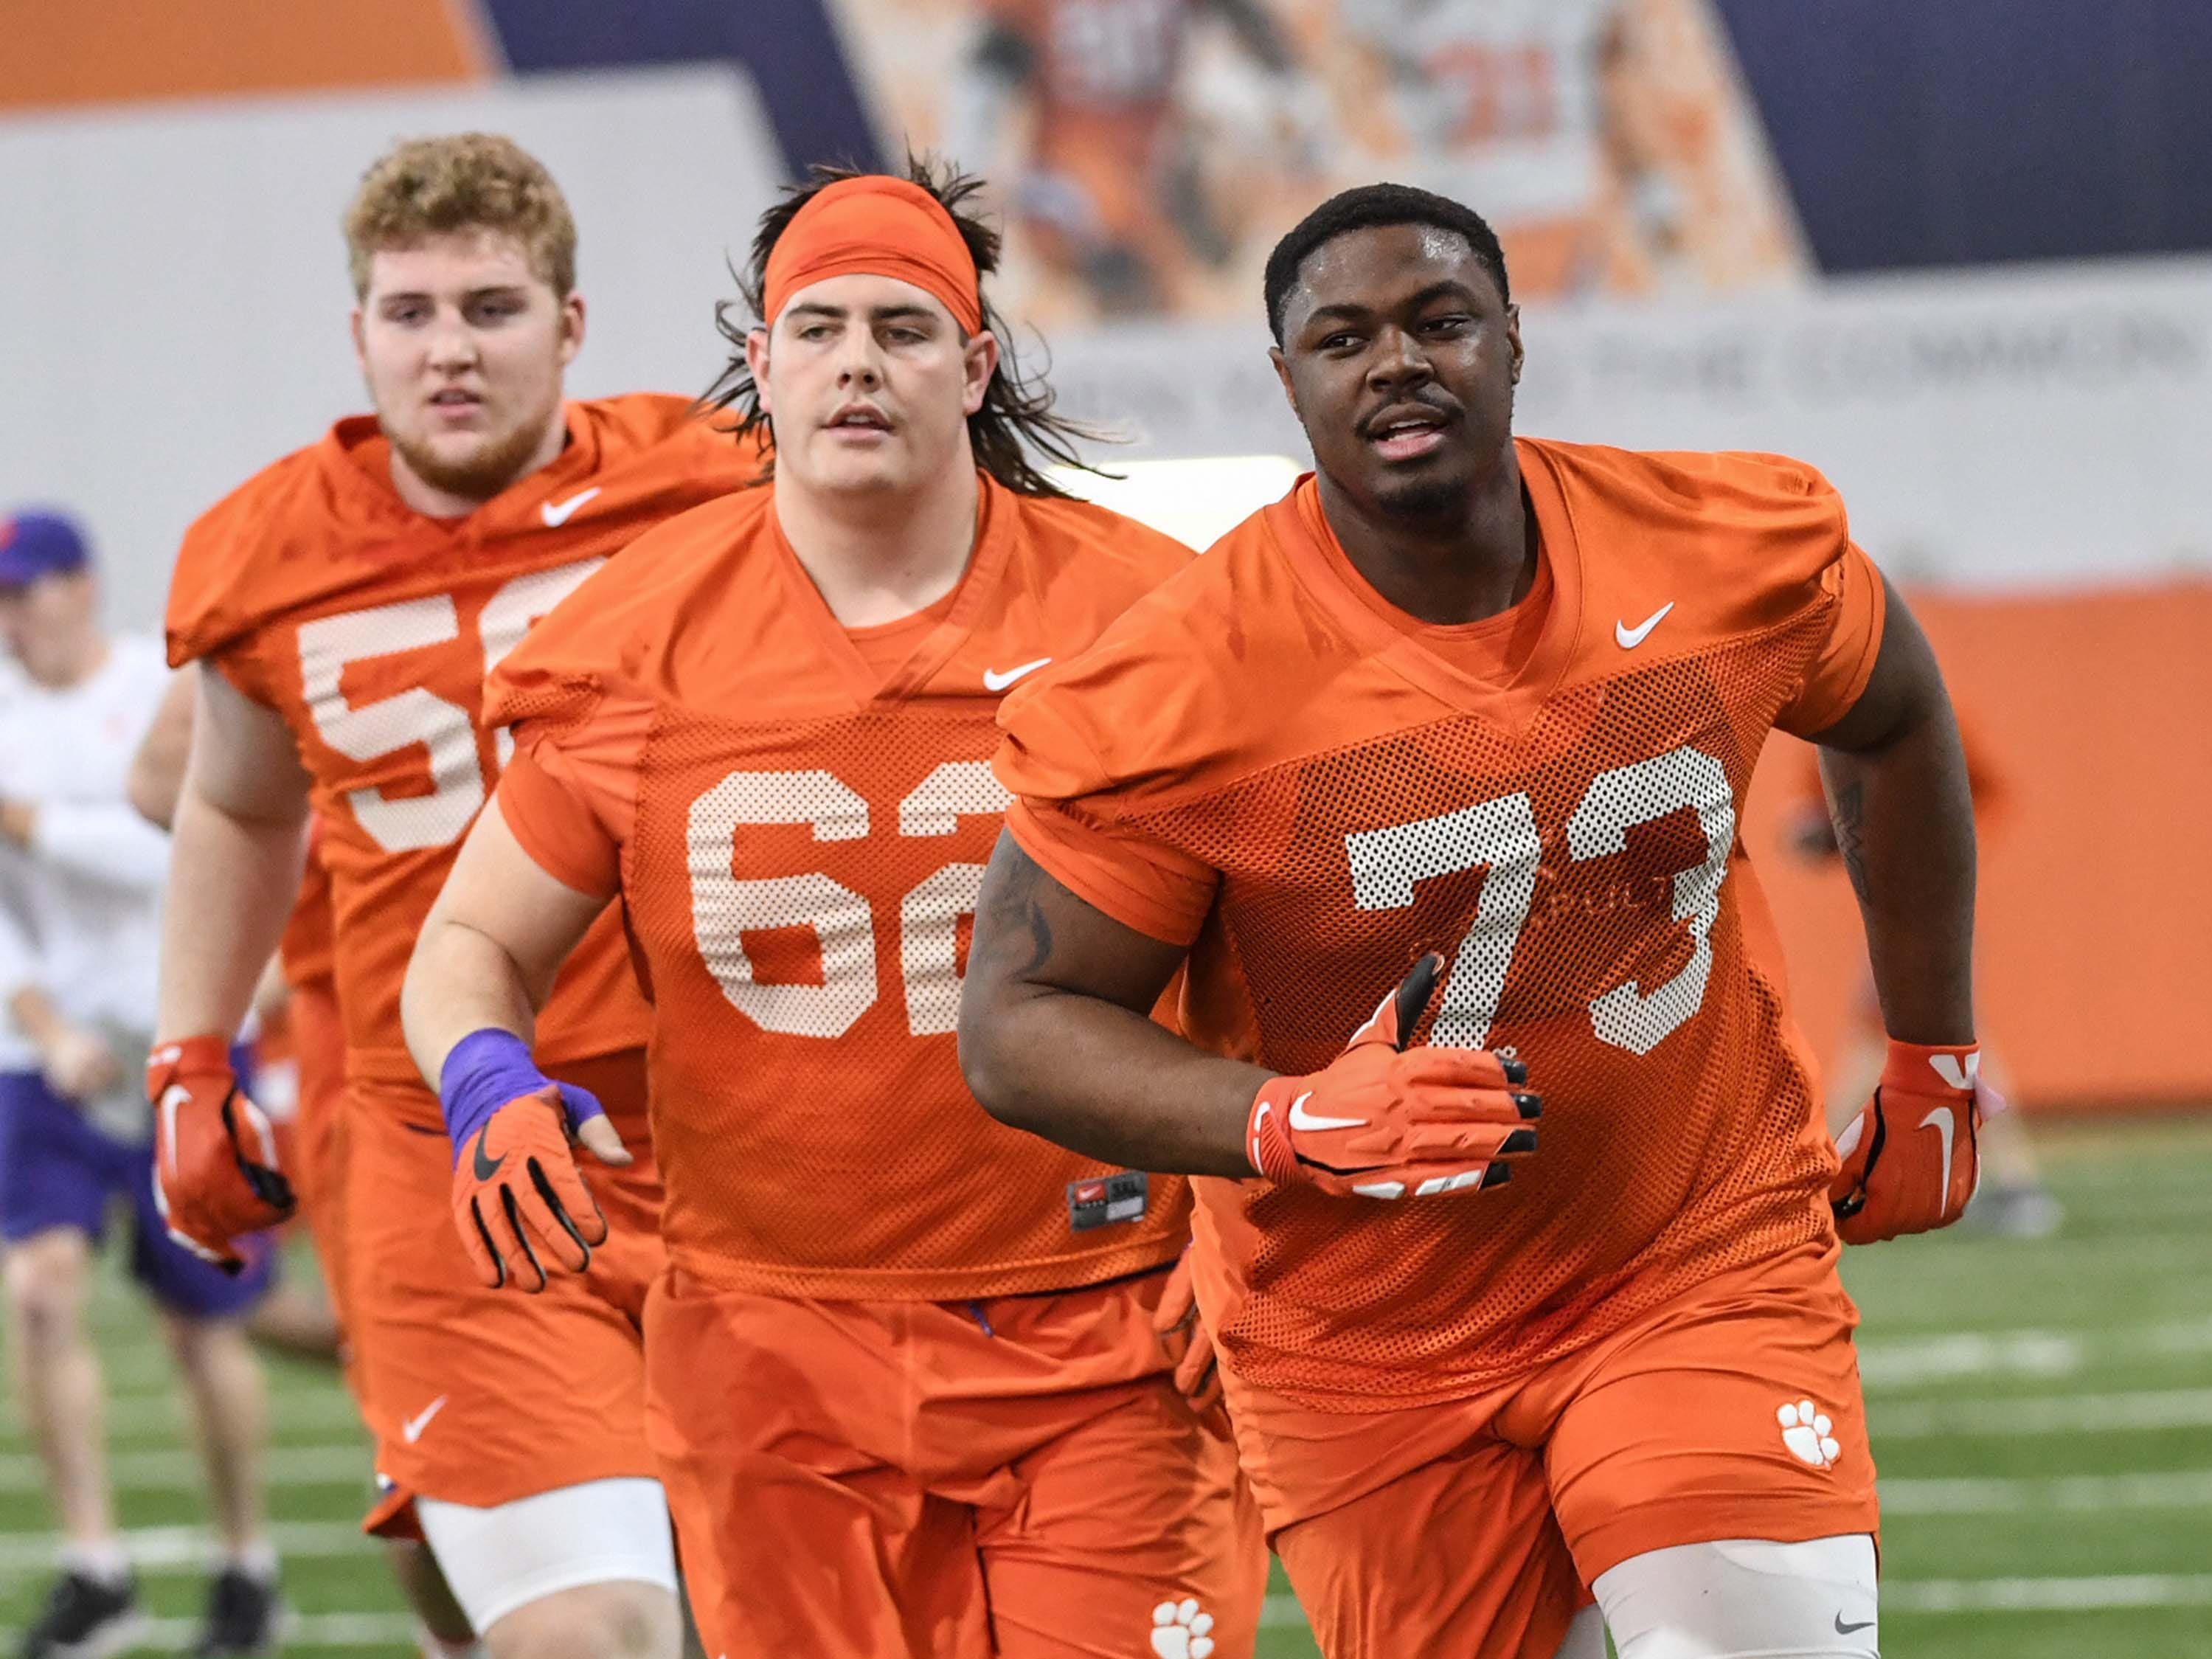 Clemson offensive lineman Will Putnam (56), Clemson offensive lineman Cade Stewart (62), and  offensive lineman Tremayne Anchrum (73) runs during the first practice at the Clemson Indoor Practice Facility in Clemson Wednesday, February 27, 2019.